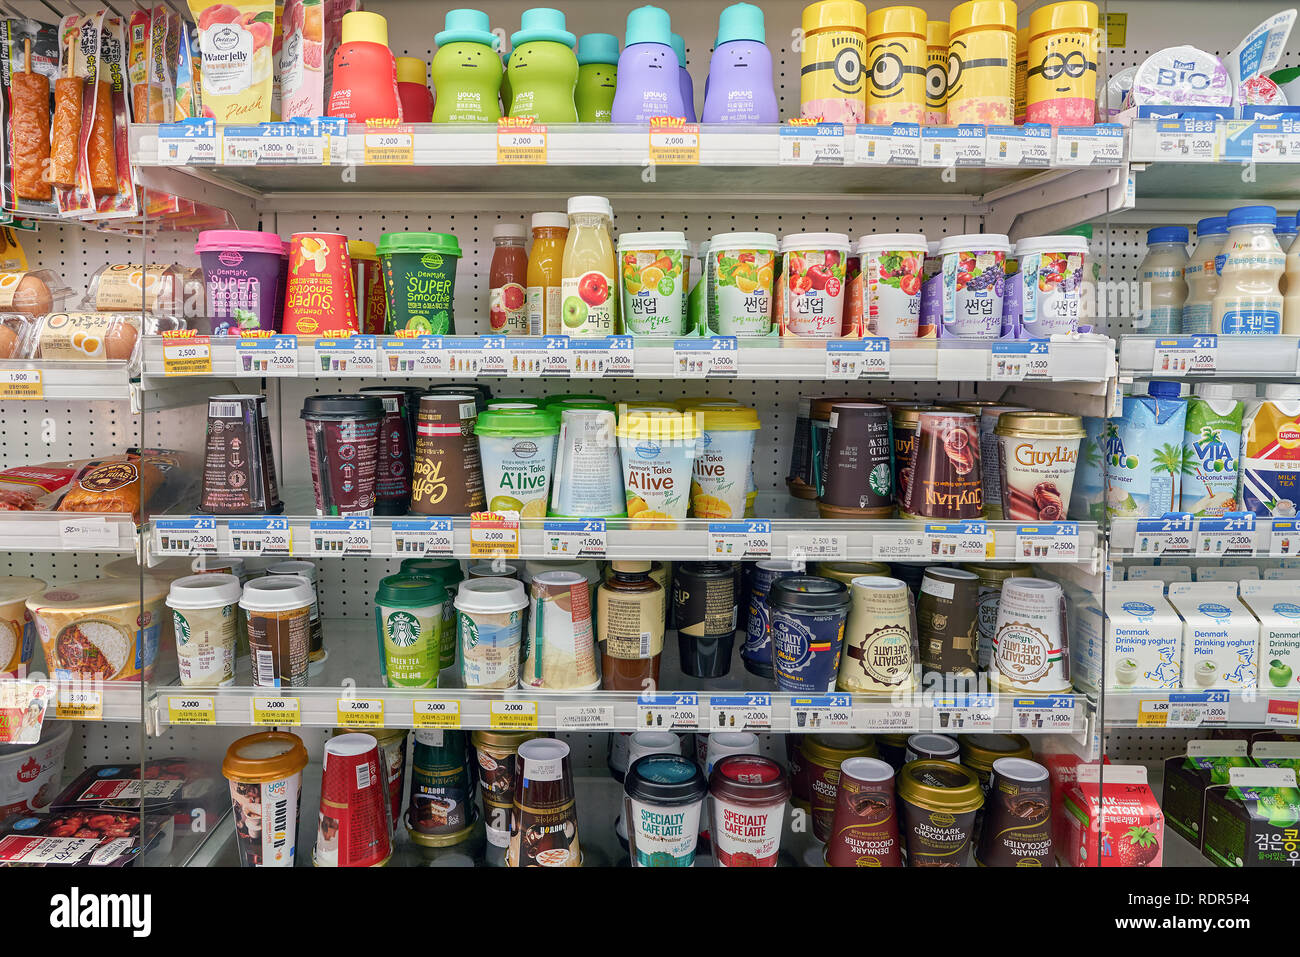 SEOUL, SOUTH KOREA - CIRCA MAY, 2017: goods on display at GS25 convenience store in Seoul. GS25 is a convenience store brand in South Korea. Stock Photo